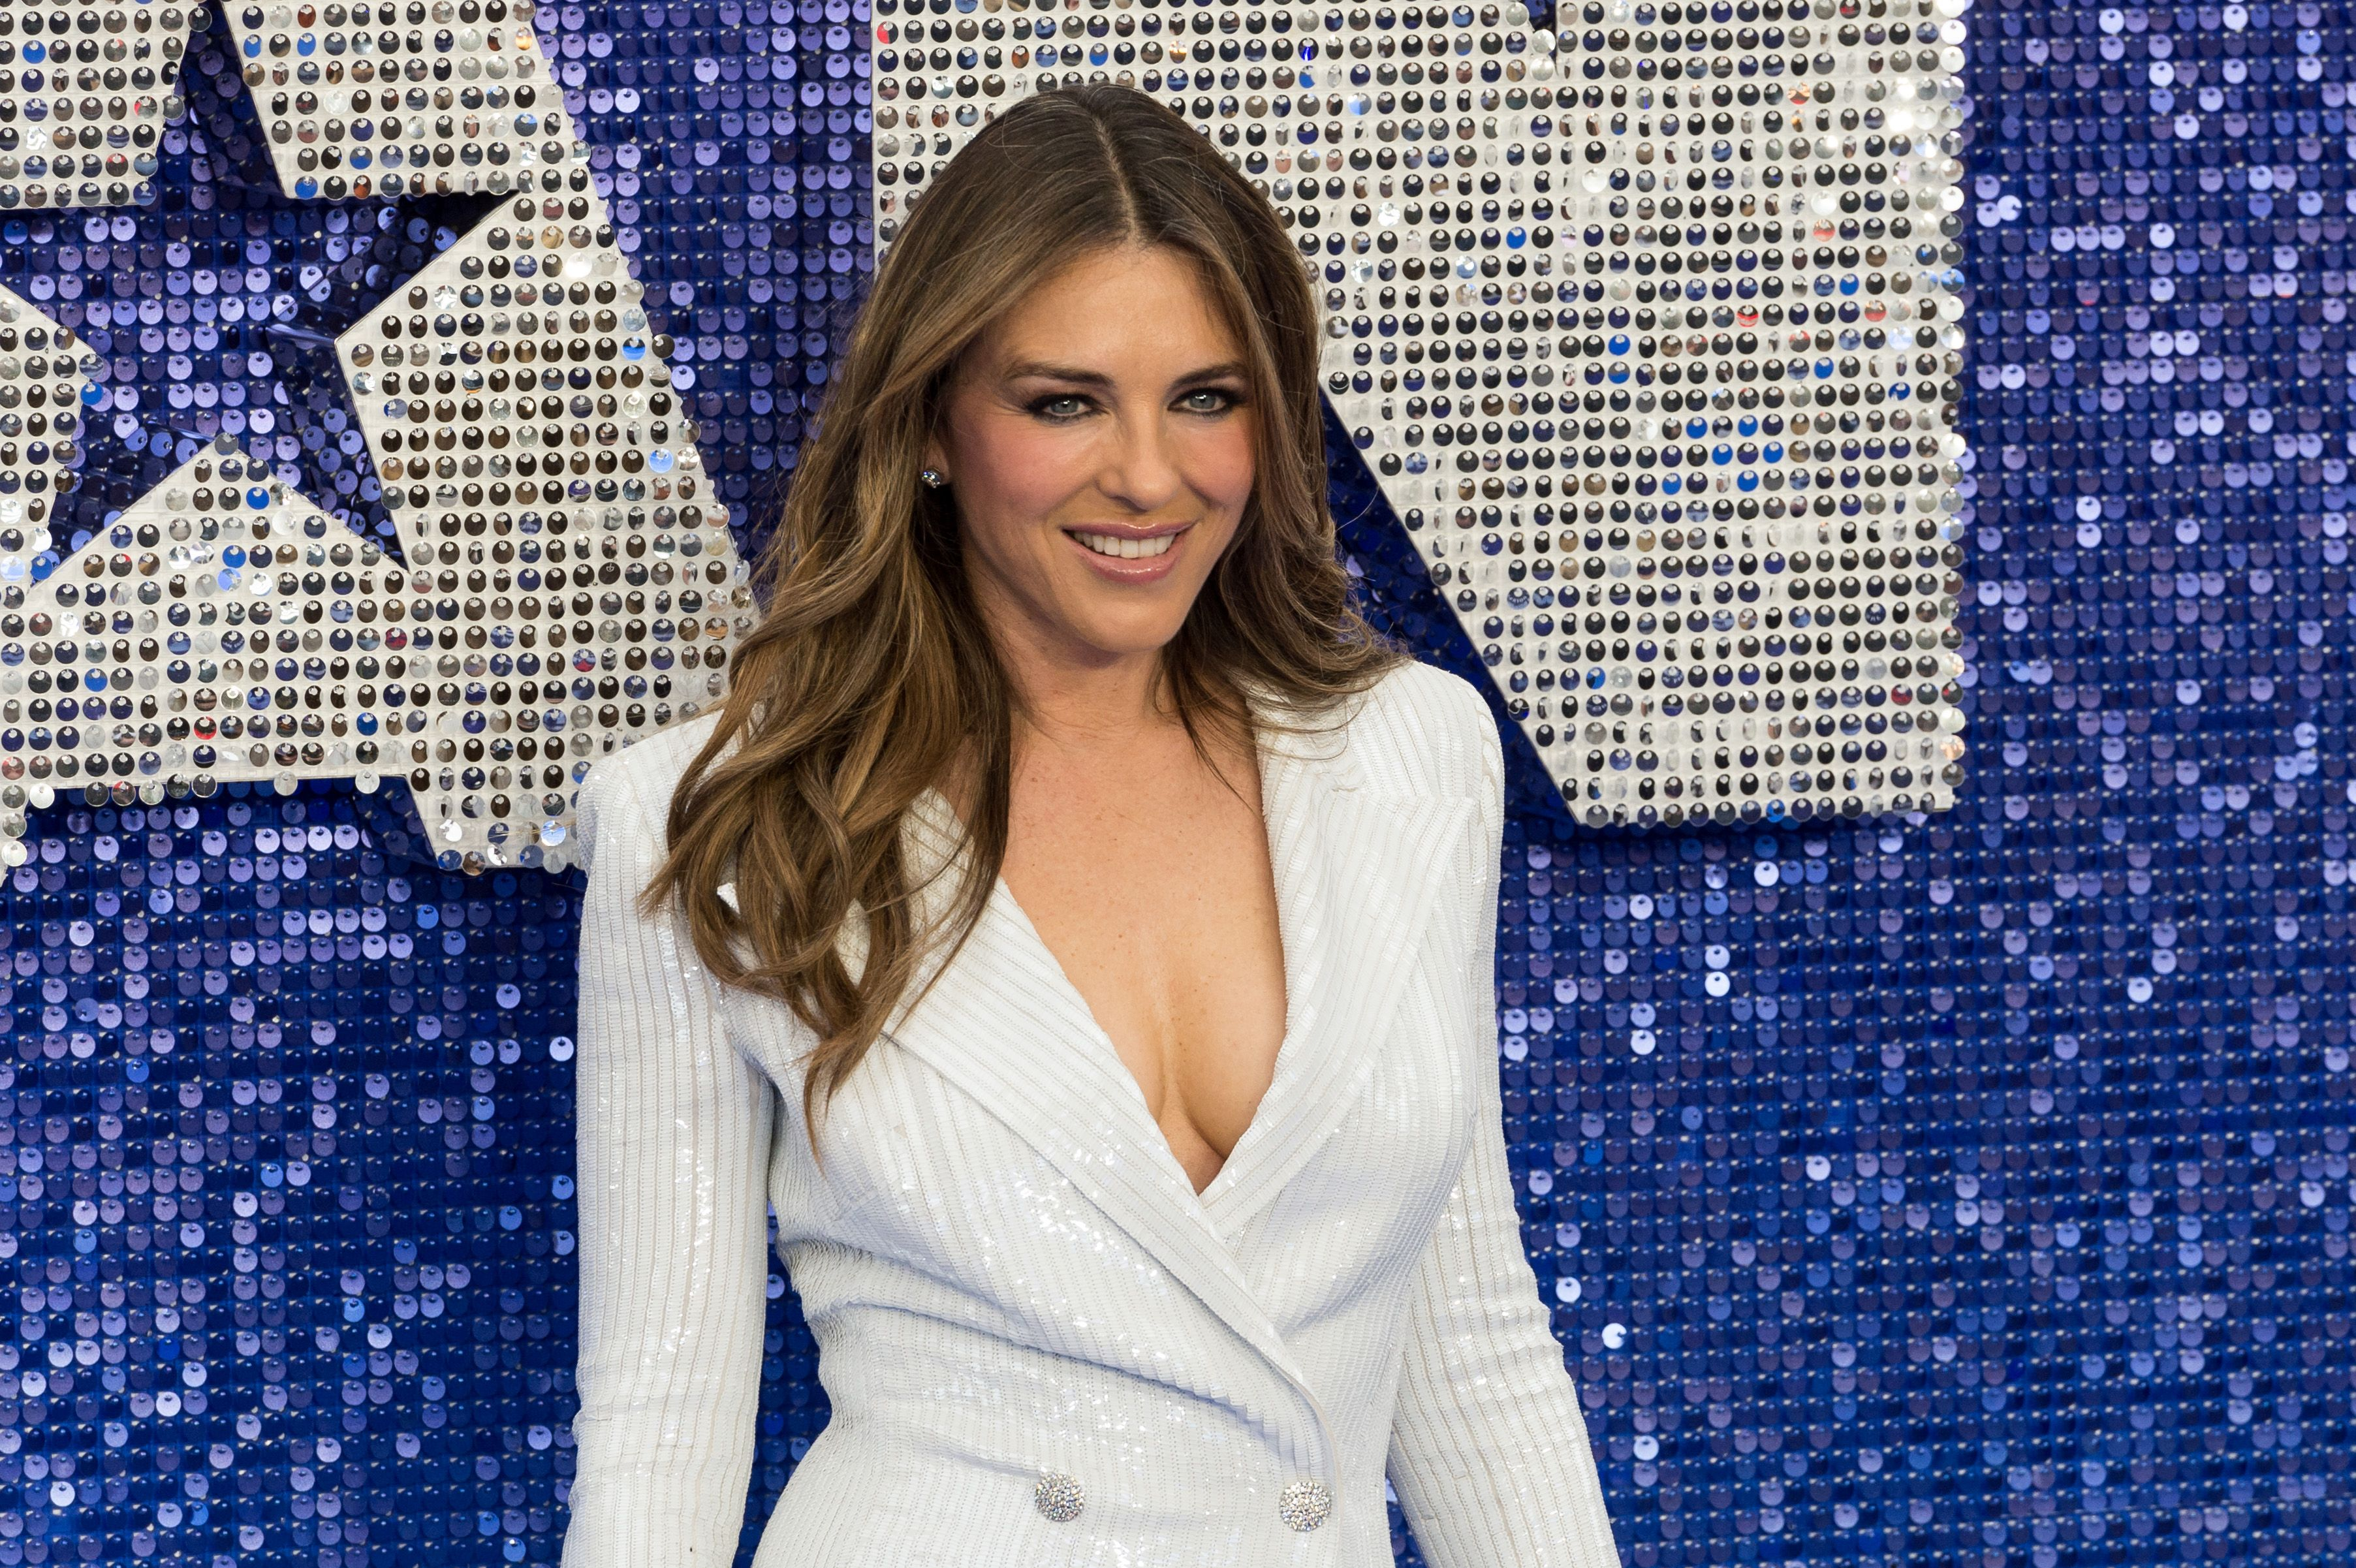 Elizabeth Hurley Looks Totally Naked Lounging In The Pool In New Instagram Photo